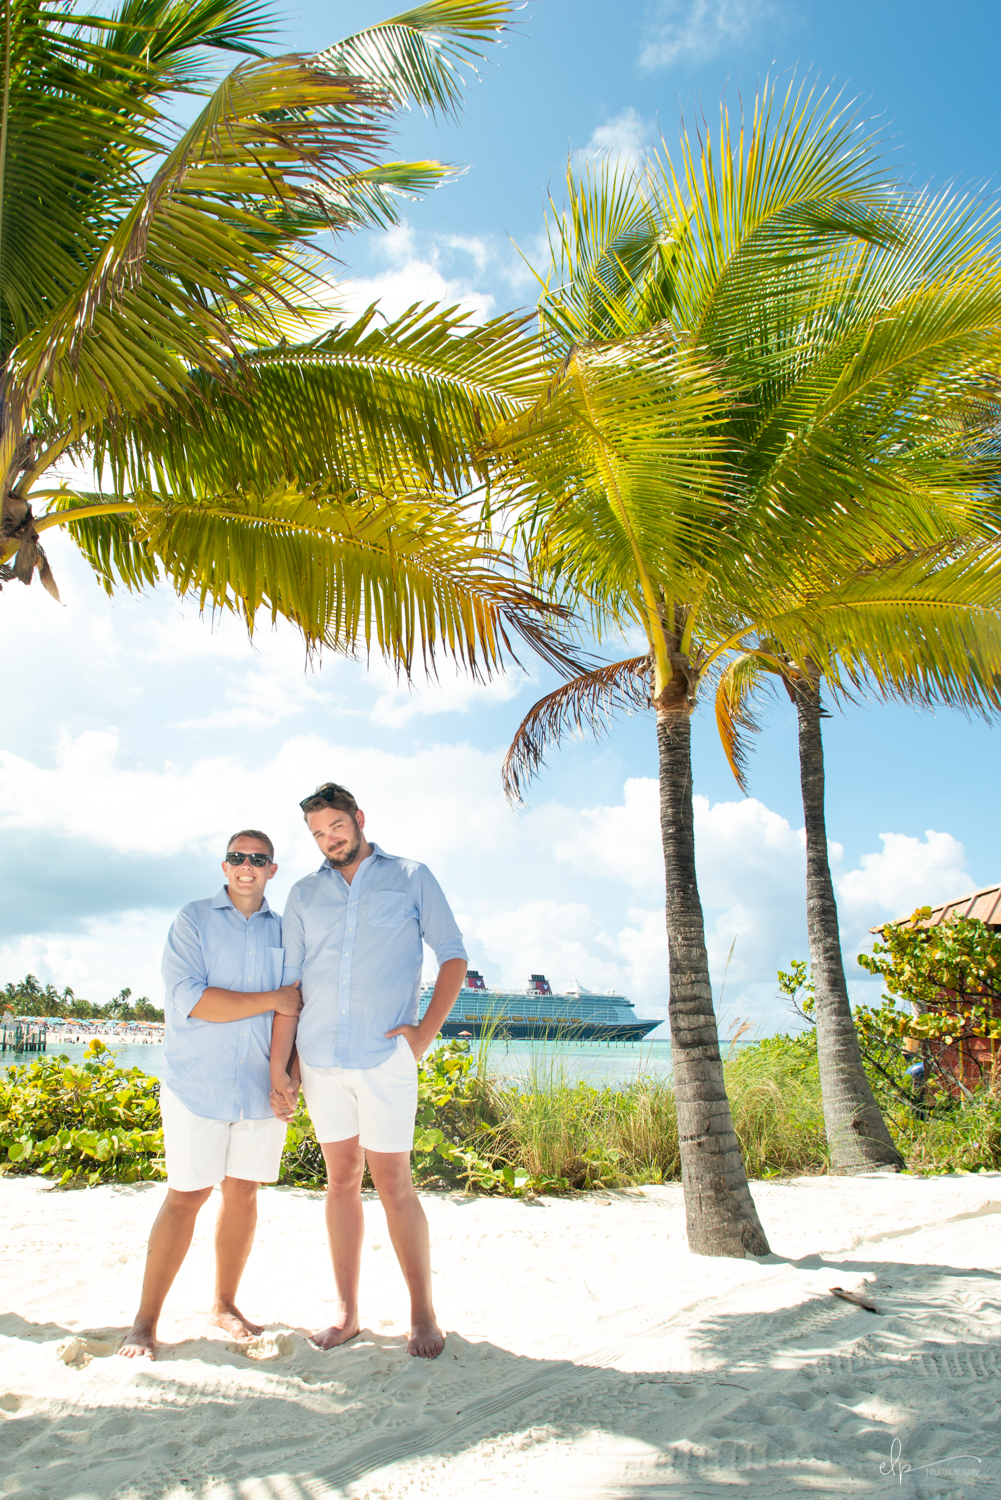 Disney-Cruise-Line's-Castaway-Cay-Beach-Wedding-Photos.jpg